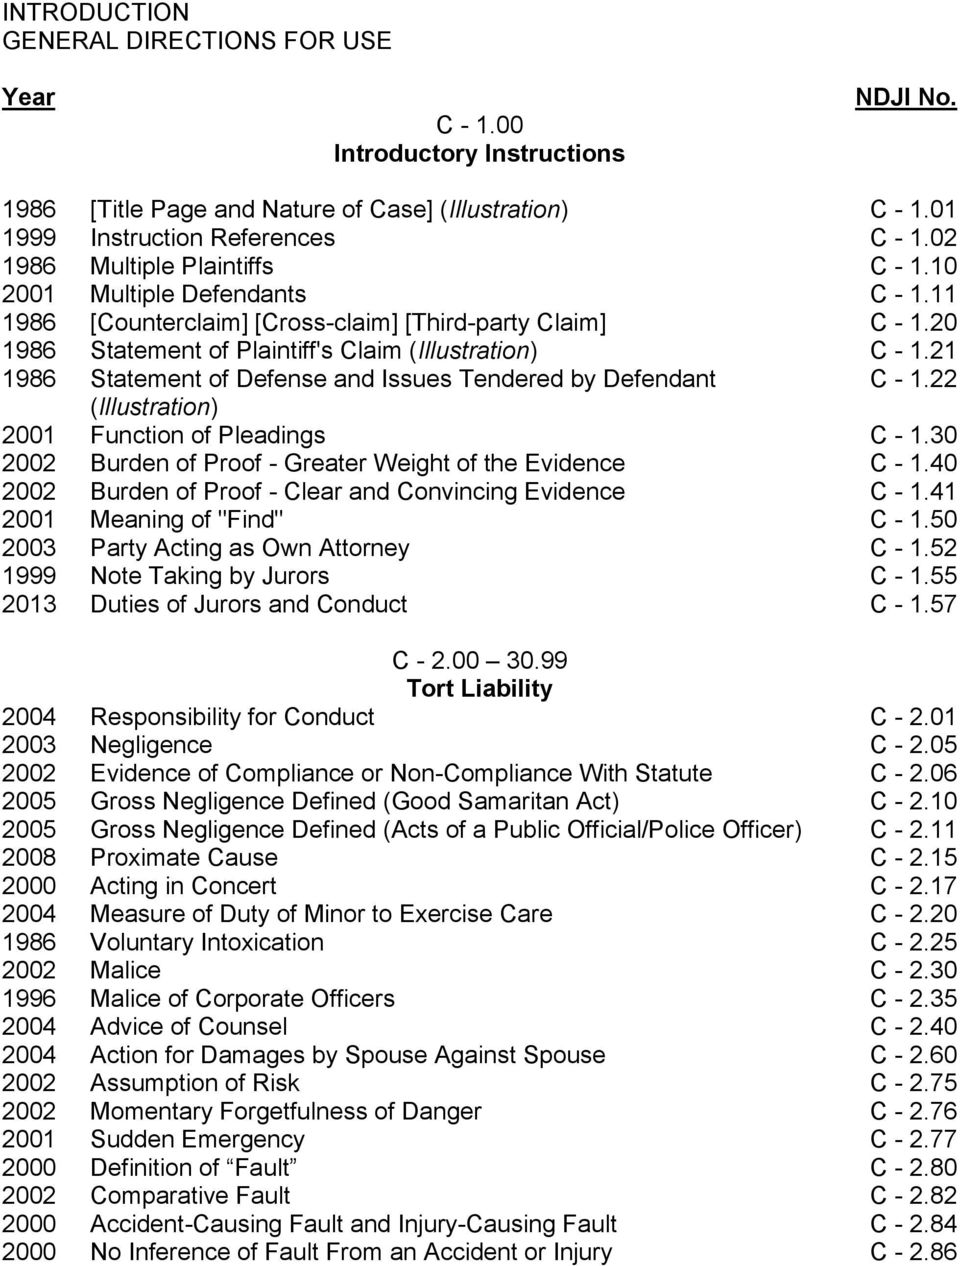 21 1986 Statement of Defense and Issues Tendered by Defendant C - 1.22 (Illustration) 2001 Function of Pleadings C - 1.30 2002 Burden of Proof - Greater Weight of the Evidence C - 1.